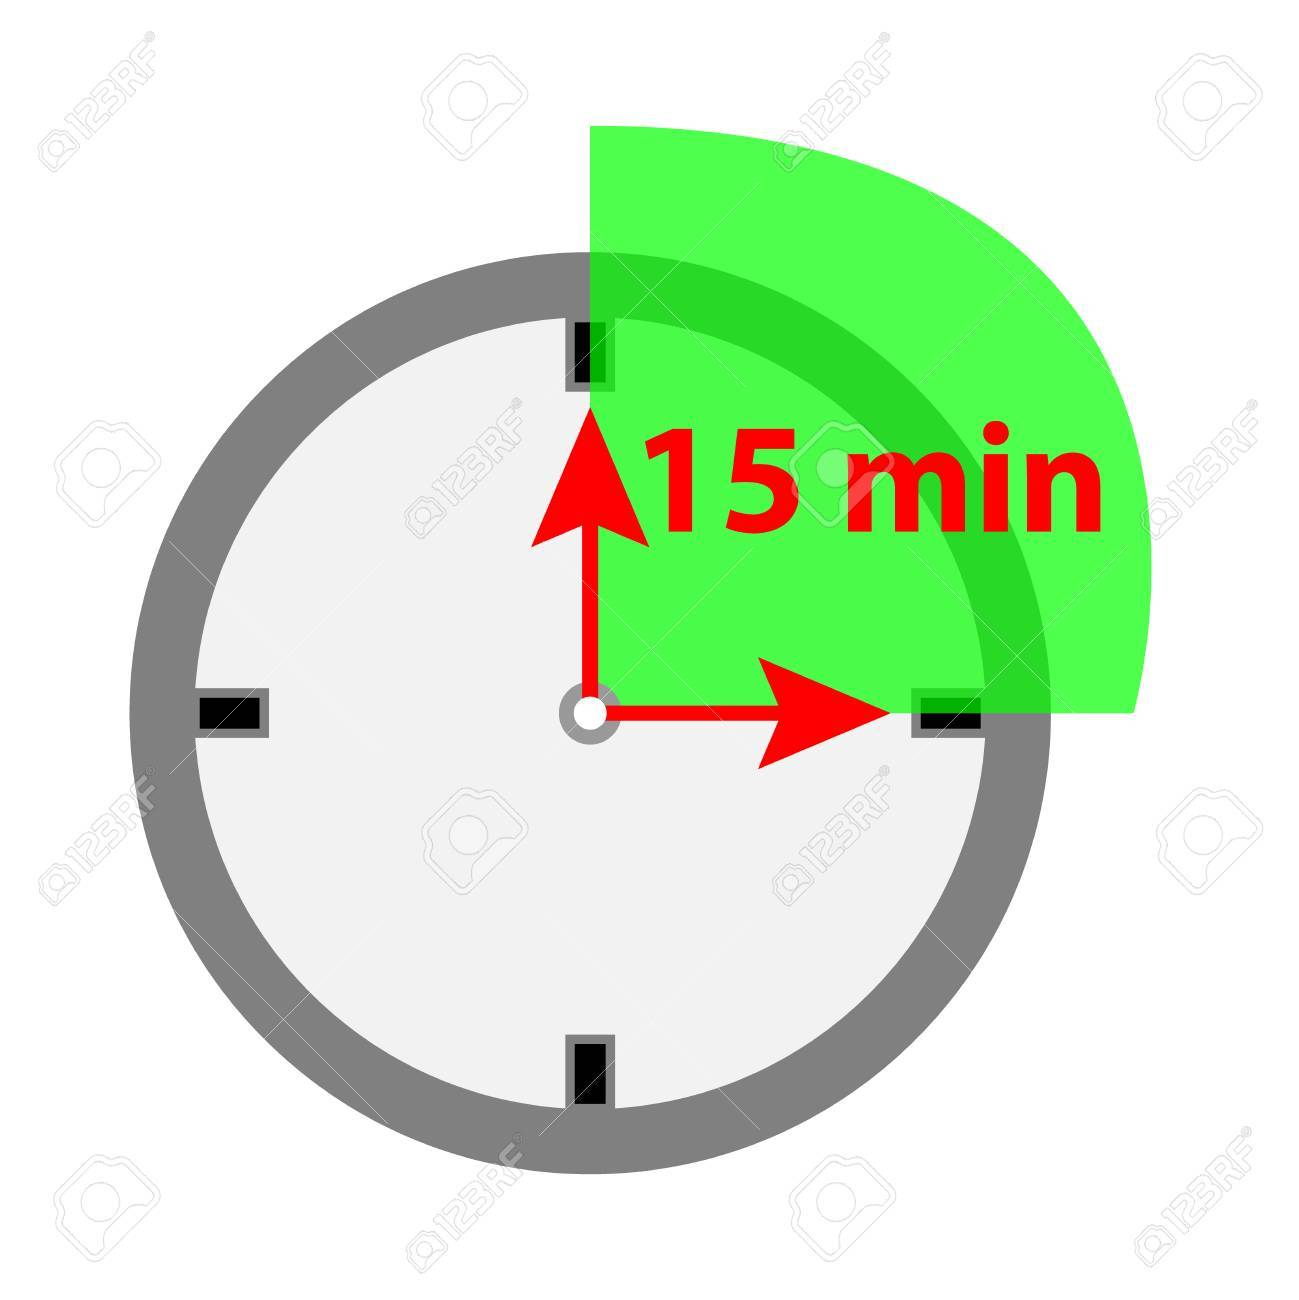 Timer icon 15 minutes isolated on white background » Clipart Portal.